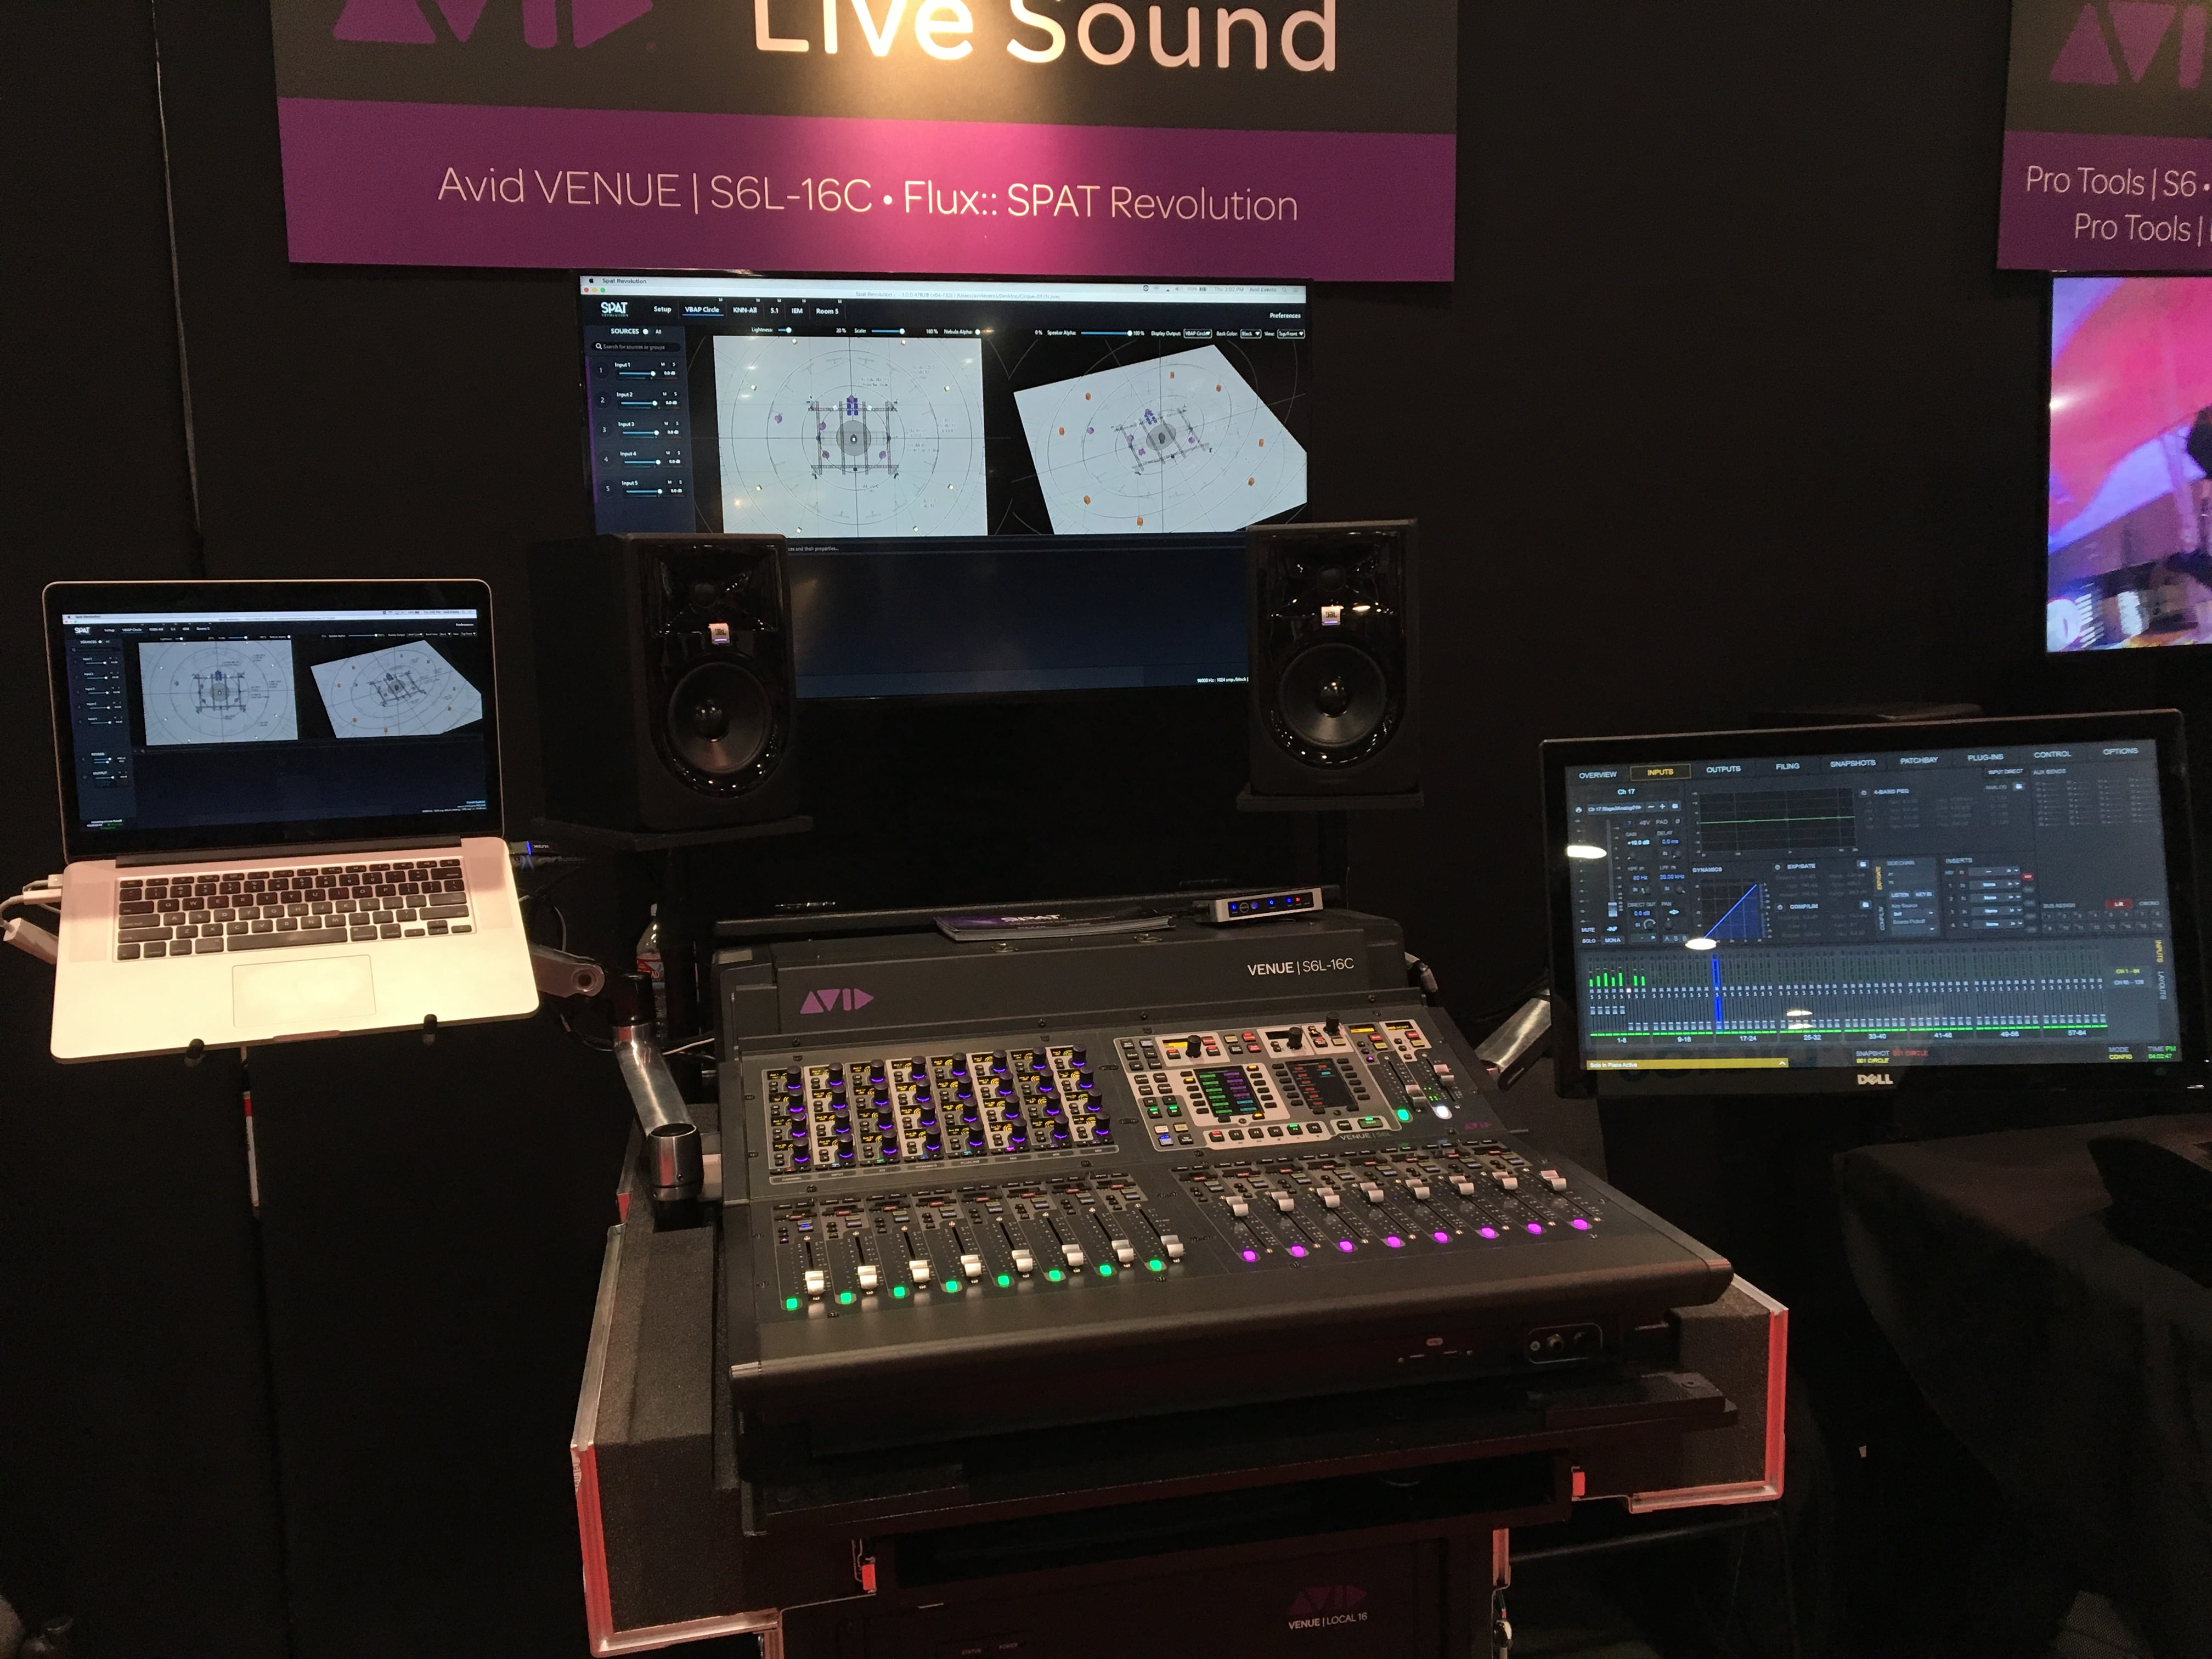 SPAT Revolution Integrated with Avid VENUE | S6L system